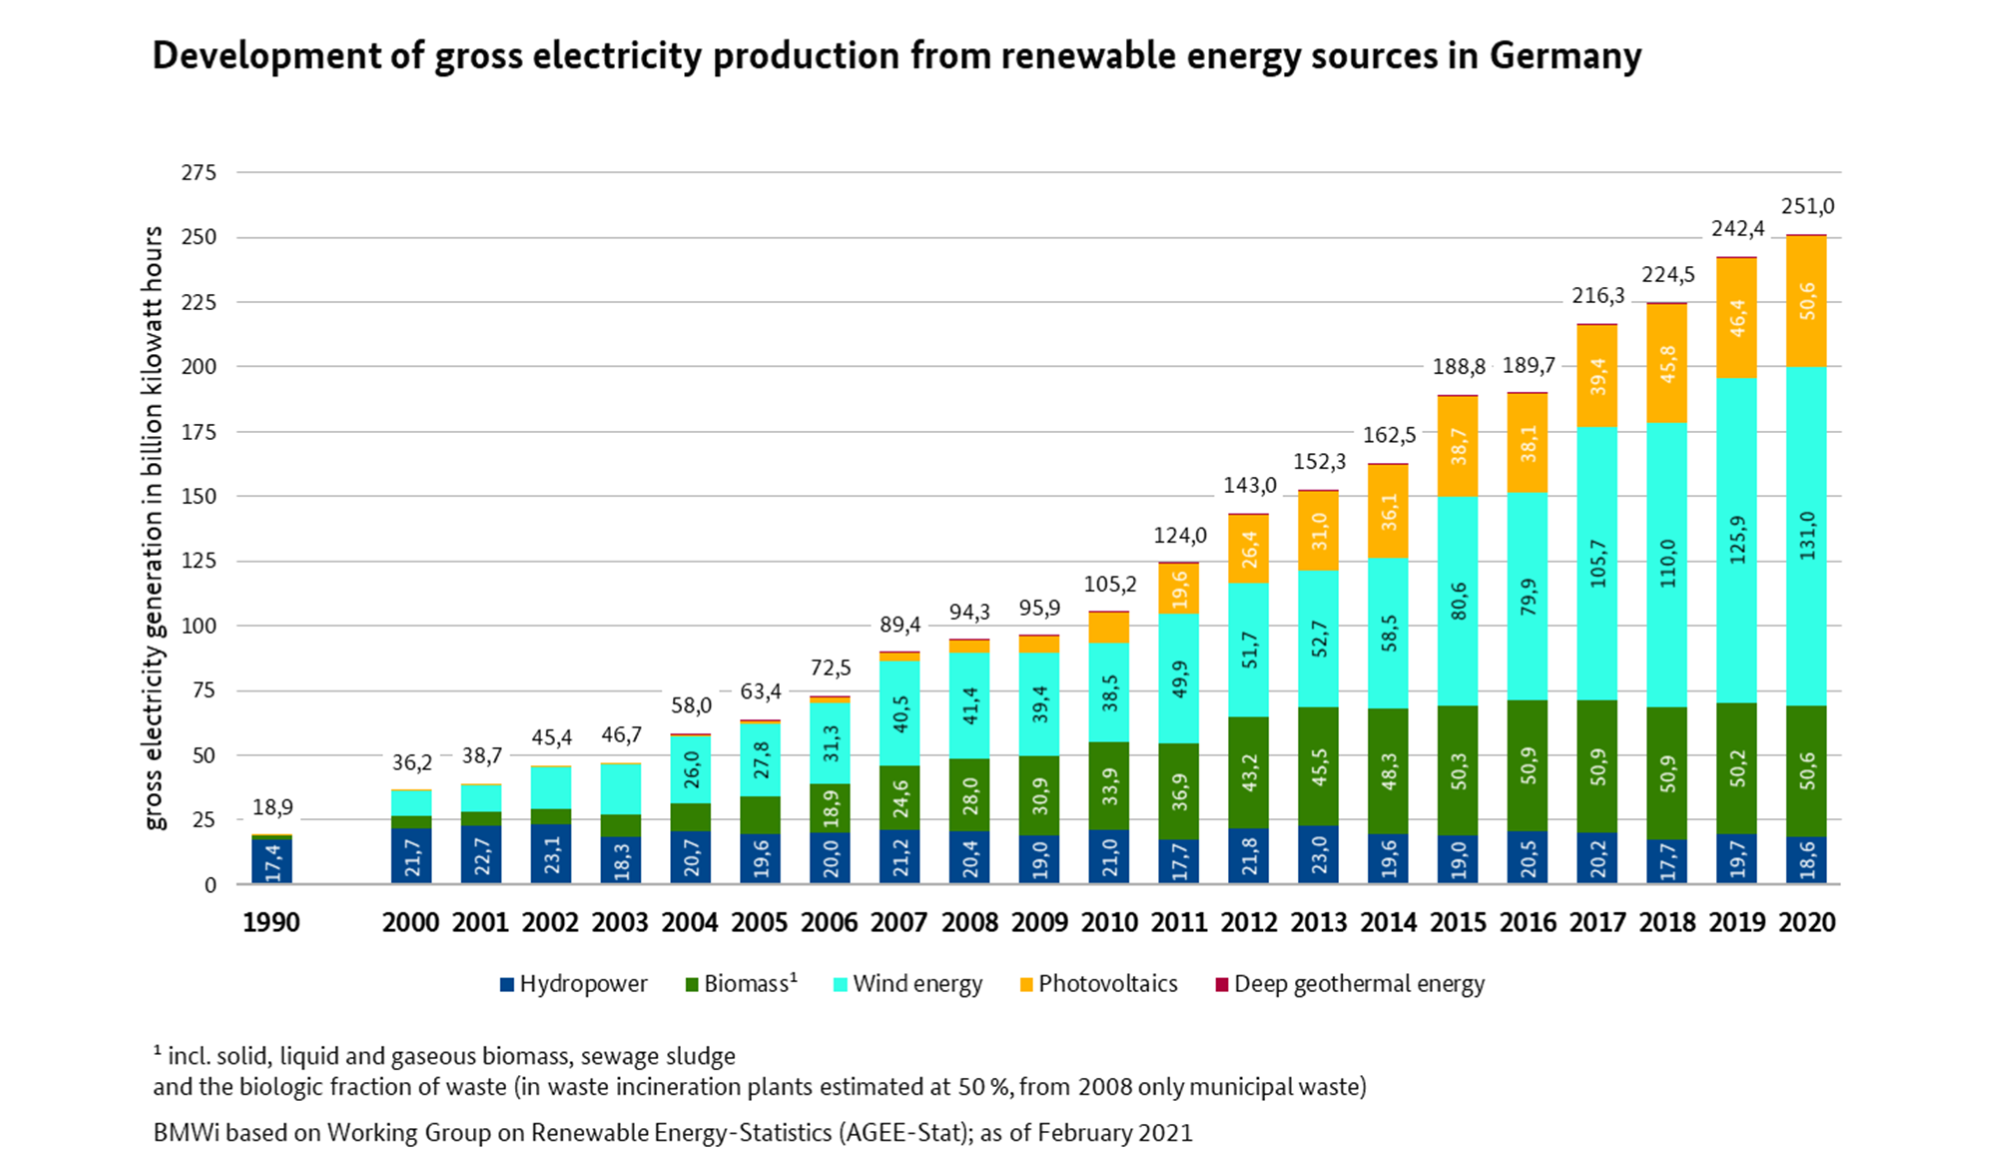 Development of electricity generation from renewable energy sources in Germany